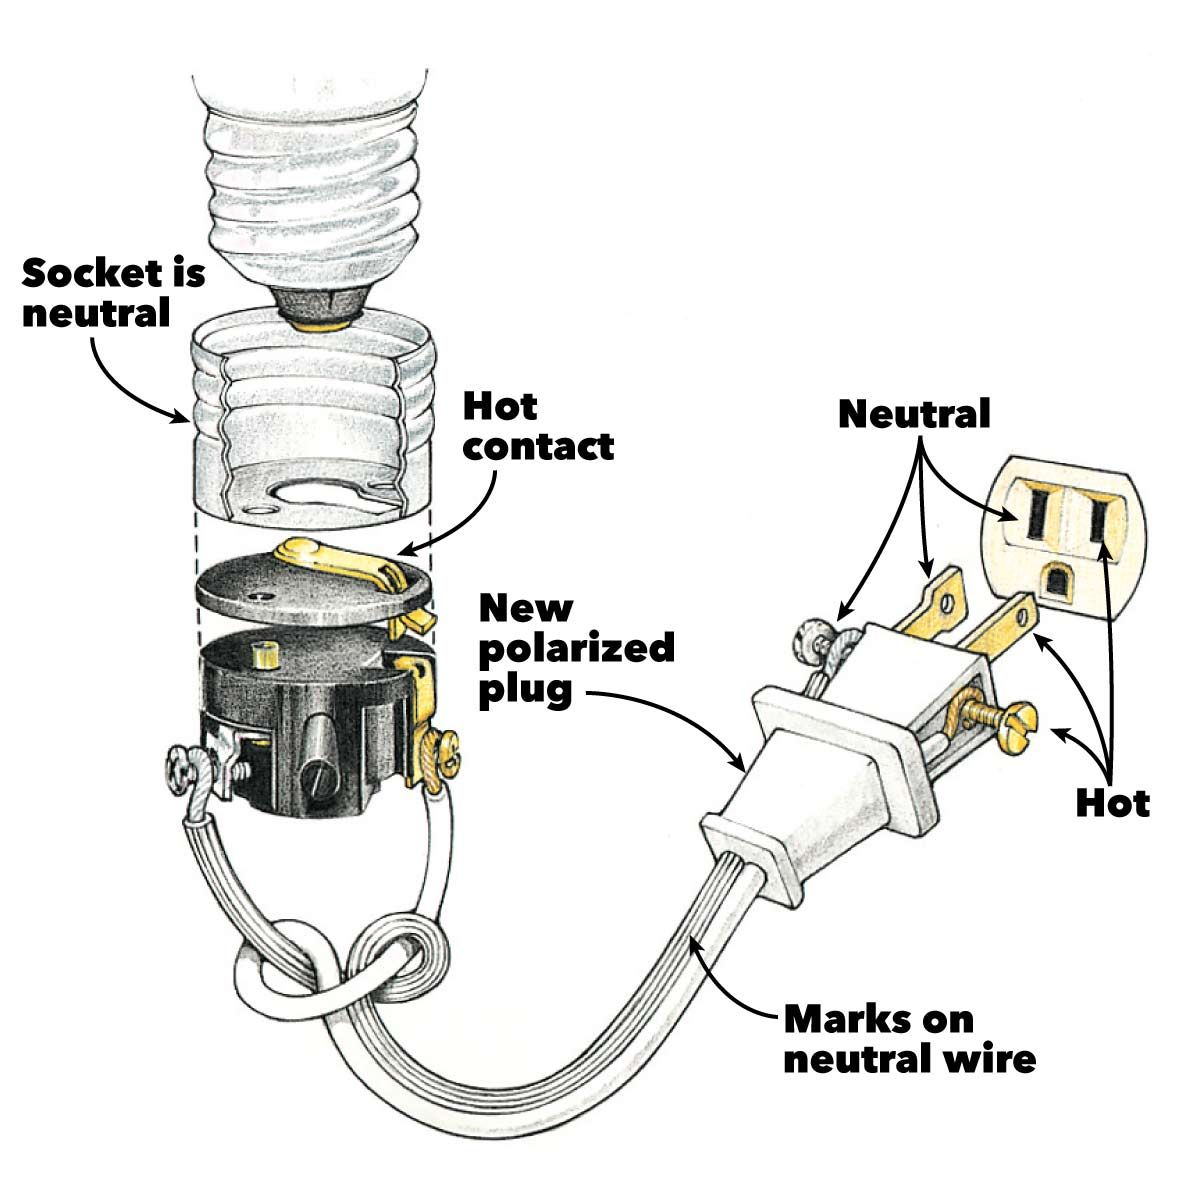 Wiring A Plug Replacing A Plug And Rewiring Electronics Wiring A Plug Electrical Wiring Home Electrical Wiring